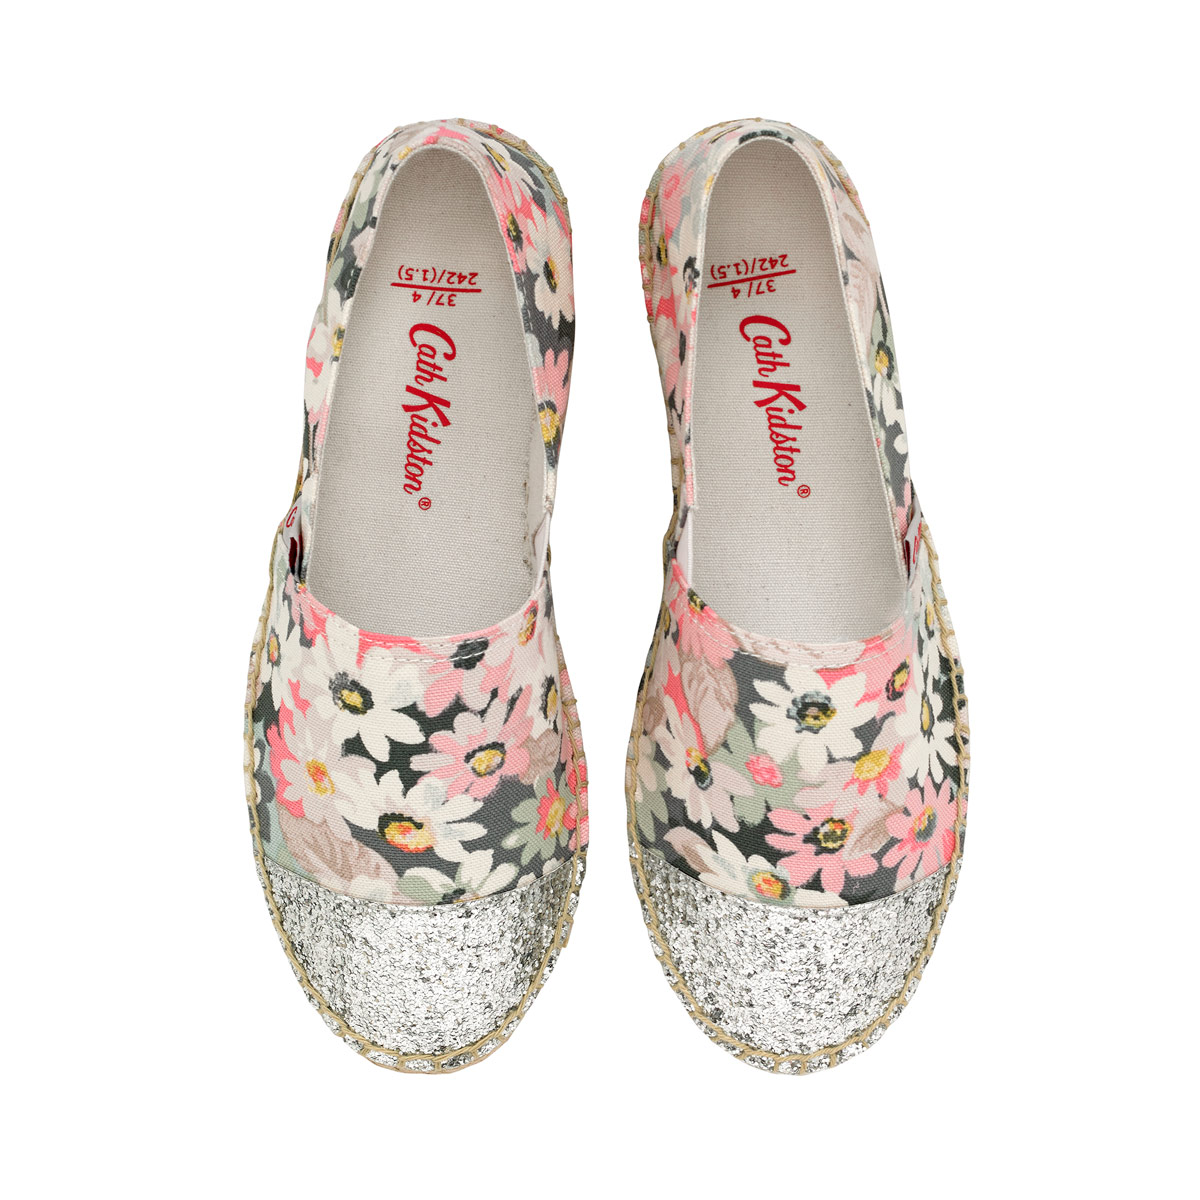 Lollies pocket purse now £19.20 - Treat your feet to classic espadrilles with added sparkle this season. Made from Painted Daisy cotton canvas with little elastic inserts that make them easy to slip on and off, these espadrilles rely on traditional padded rope sole and silver glitter toe for your ultimate comfort and style.